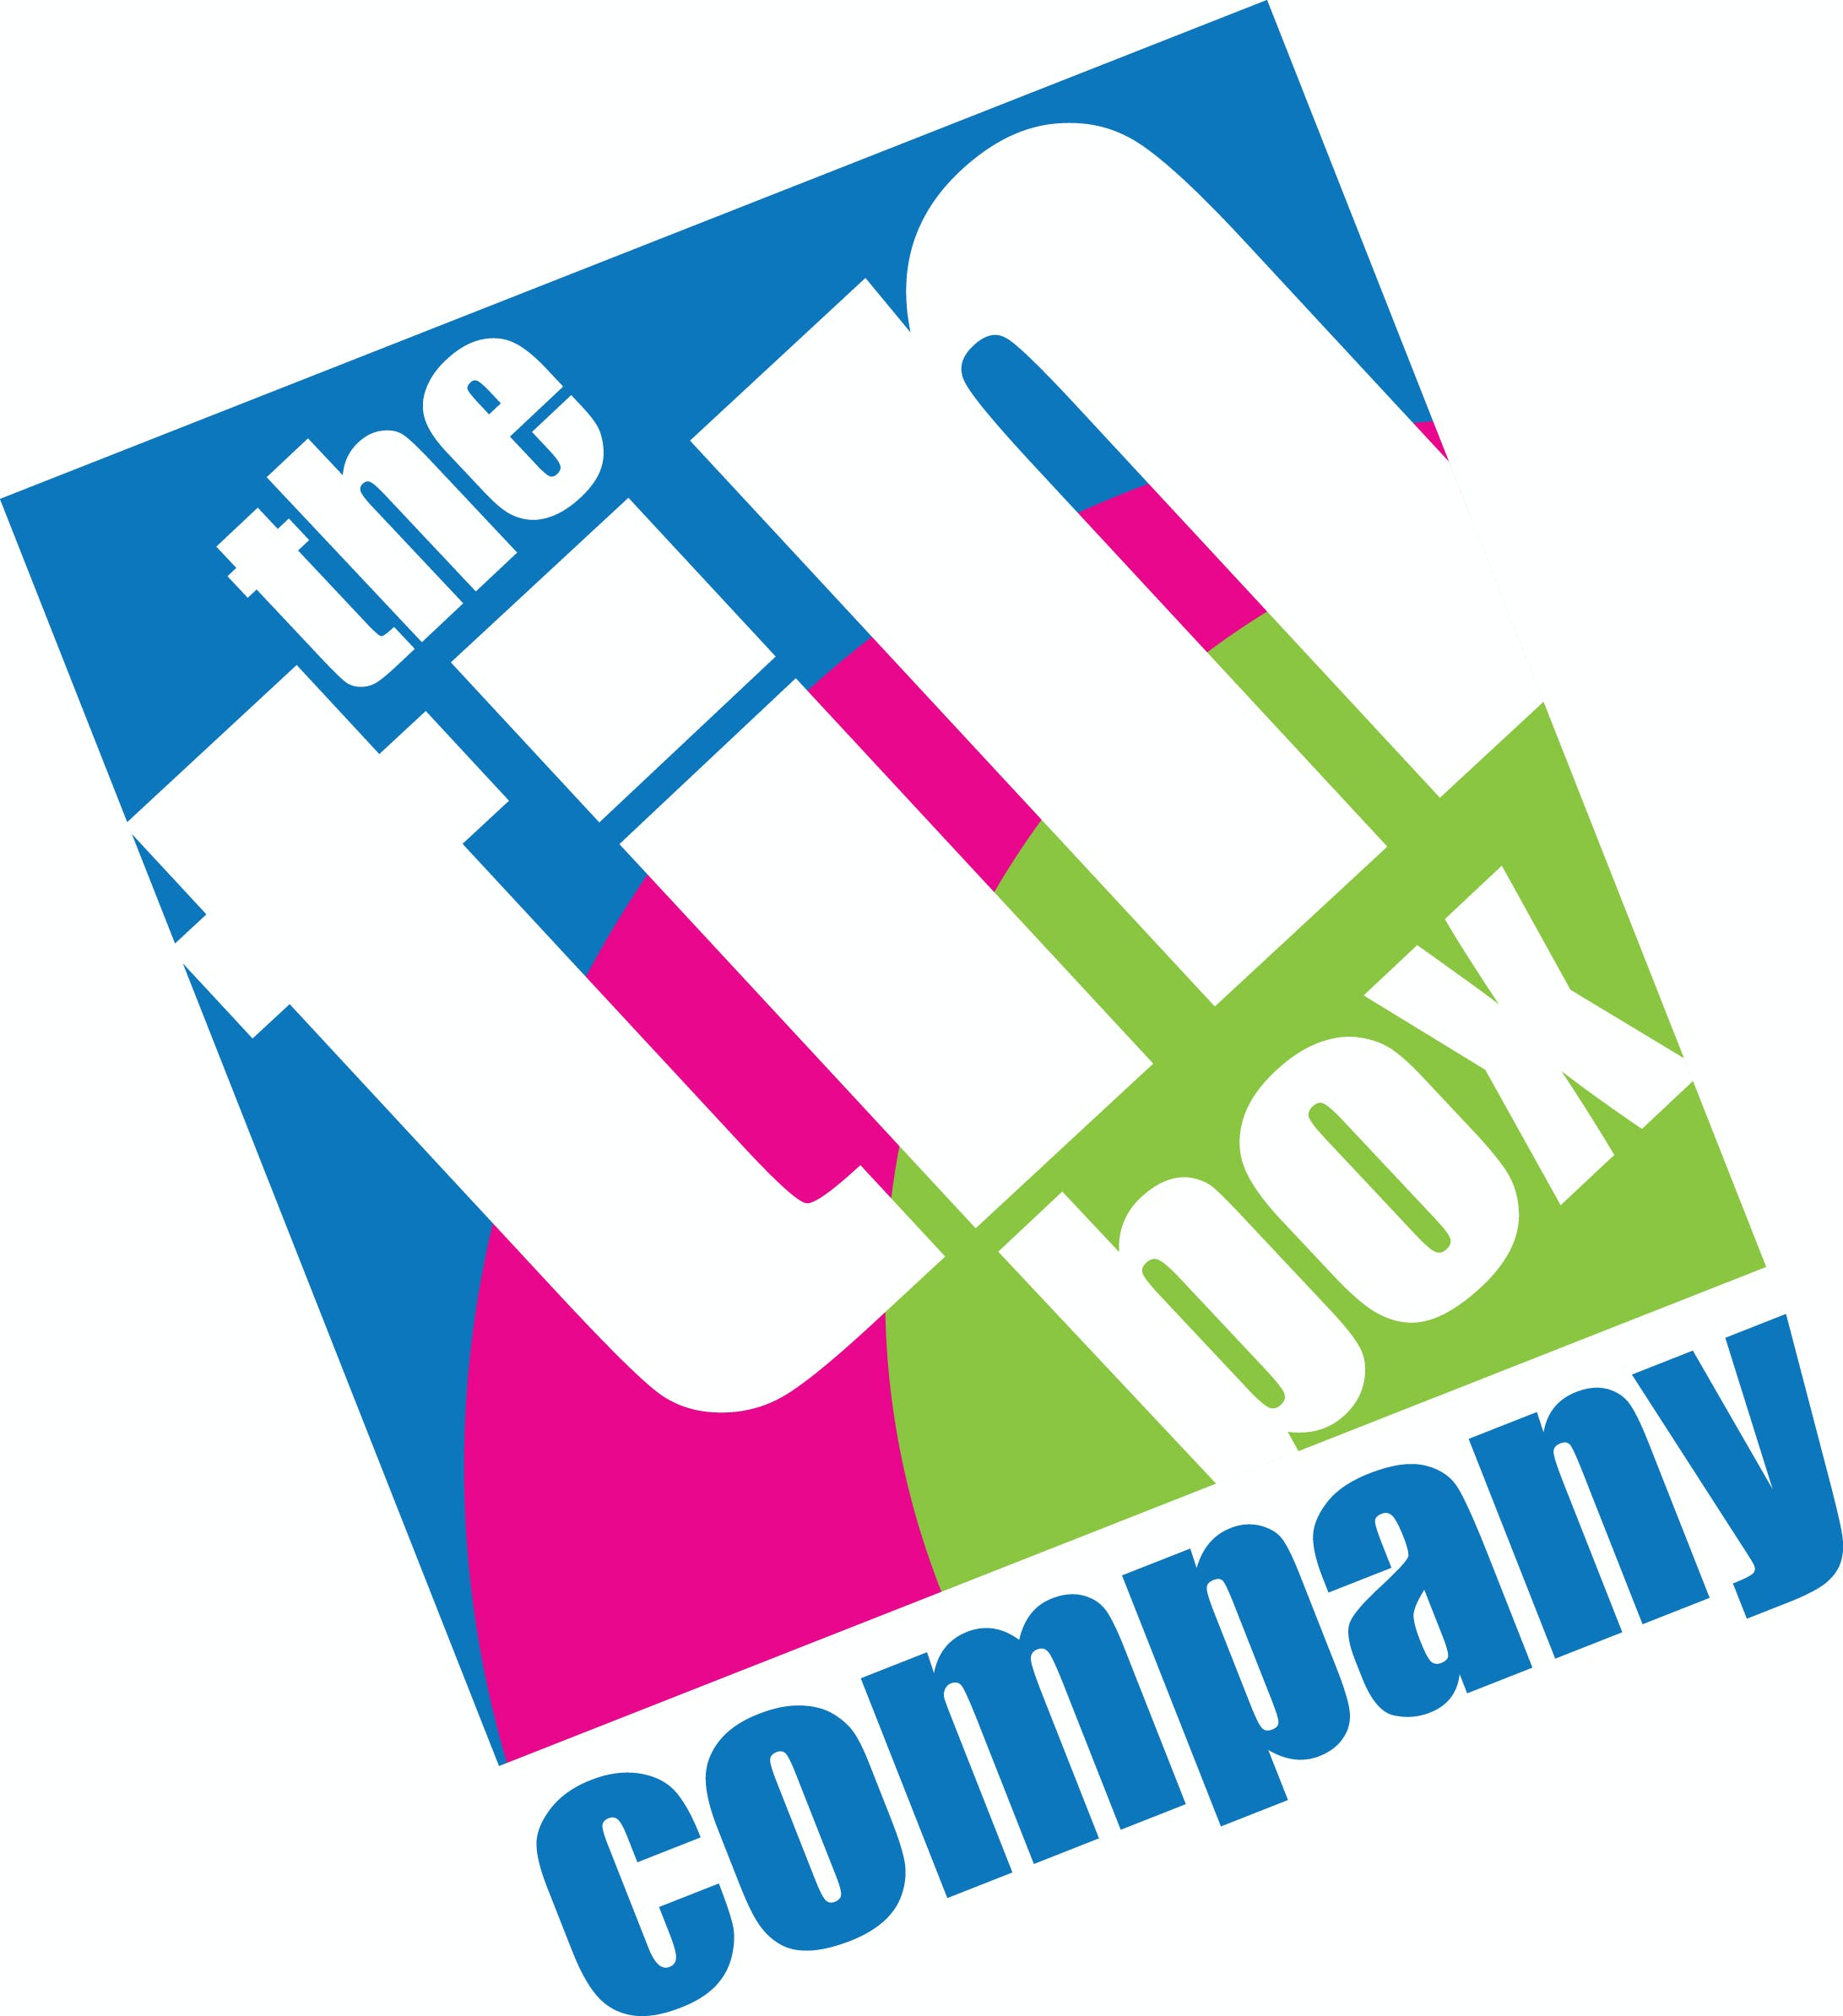 The Tin Box Company of America, Inc